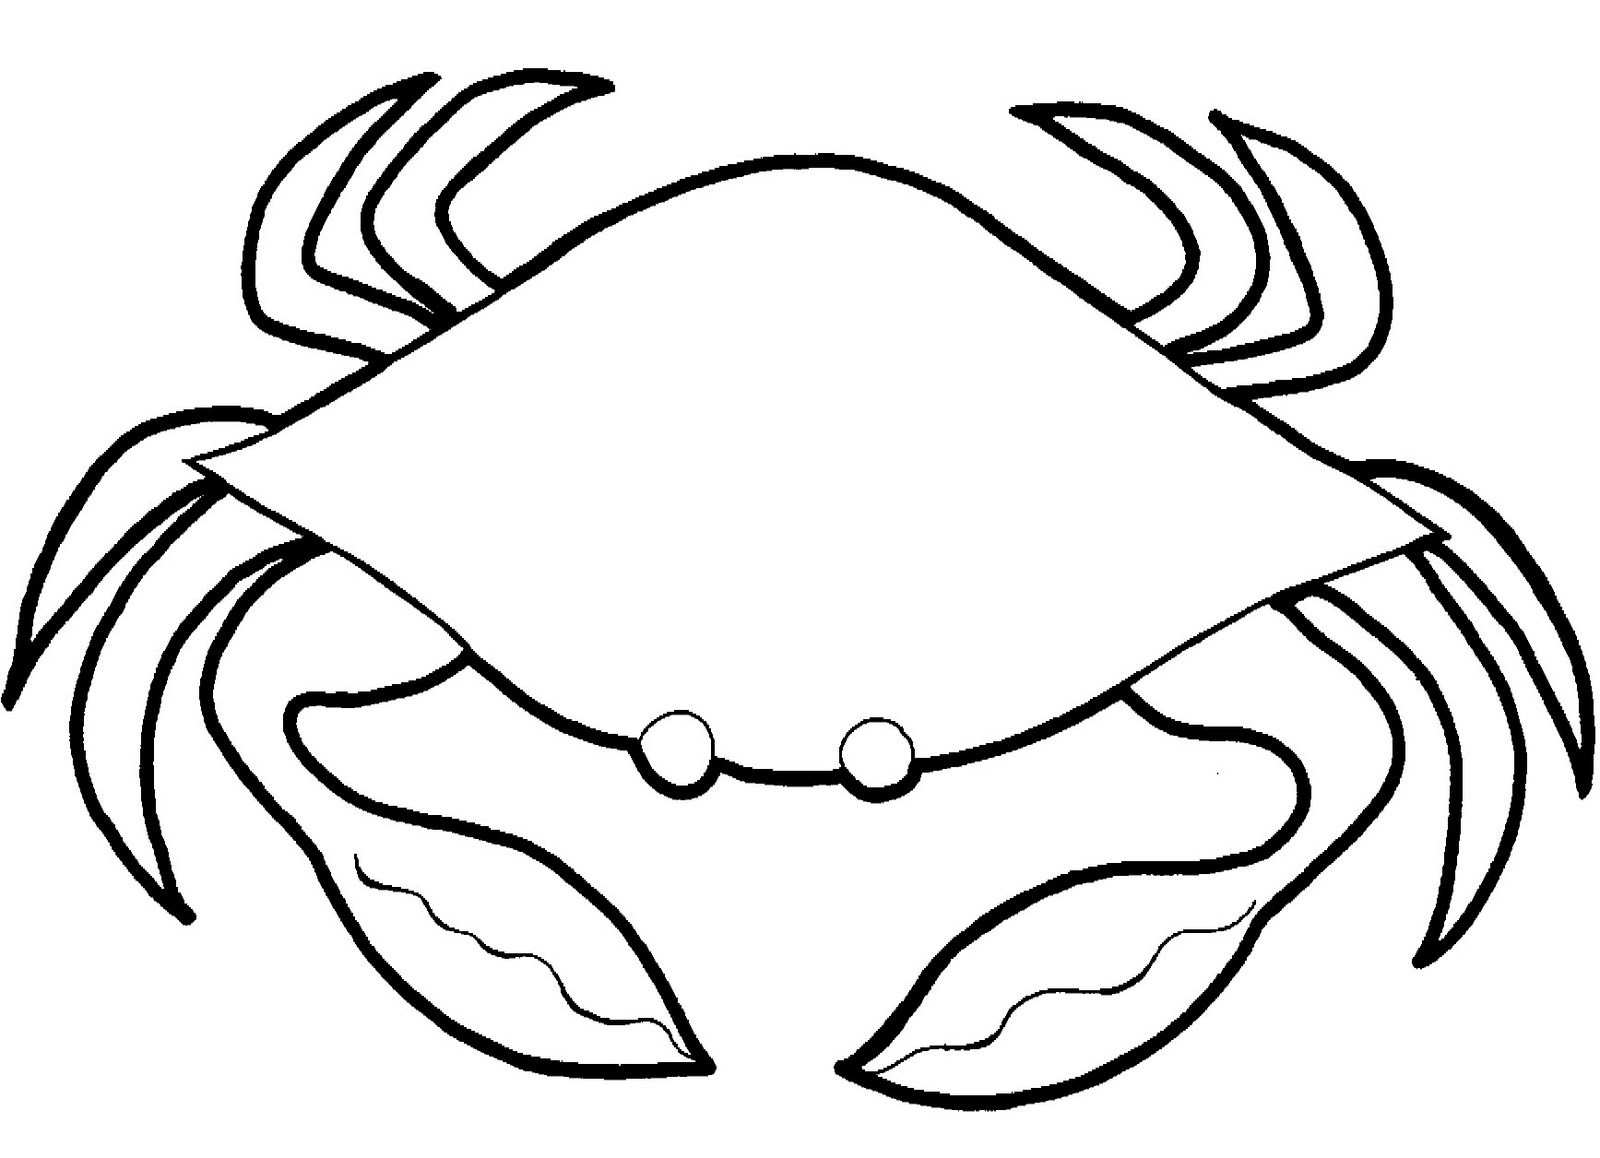 1600x1158 Blue Crab Coloring Page Bed Mattress Sale Mums Projects Rem